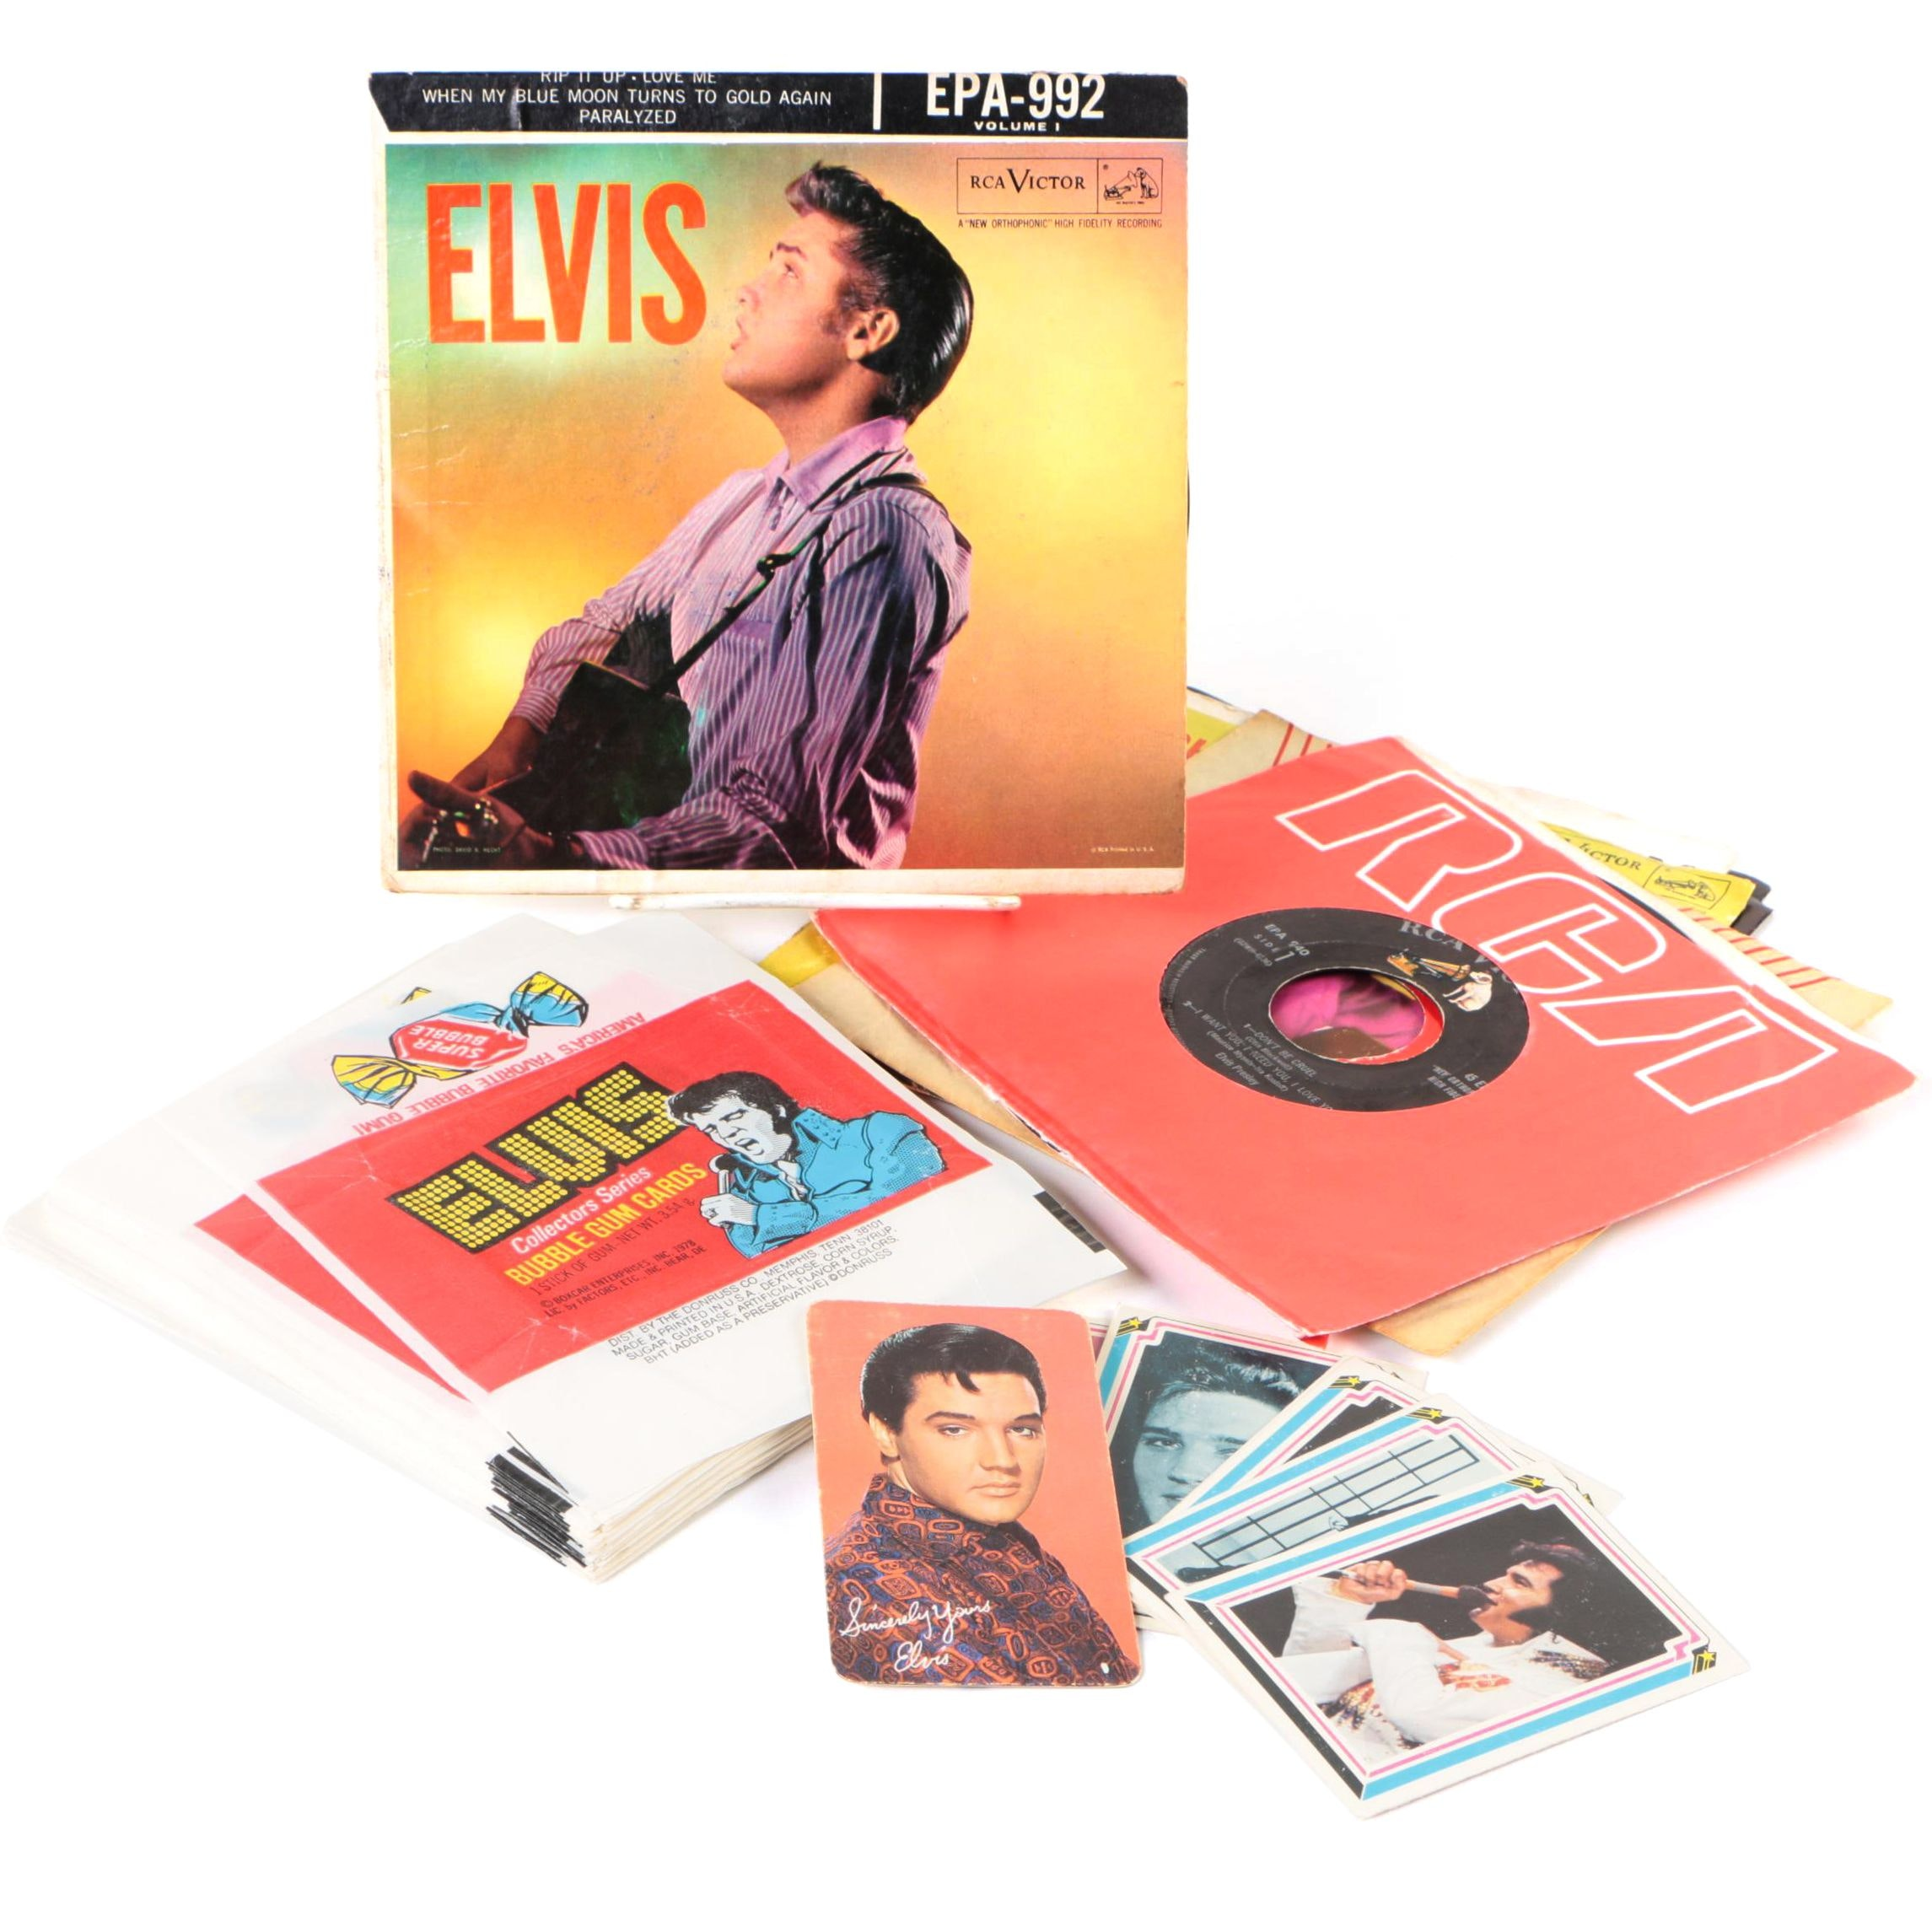 Elvis Presley 45 RPM Records with Bubble Gum Cards